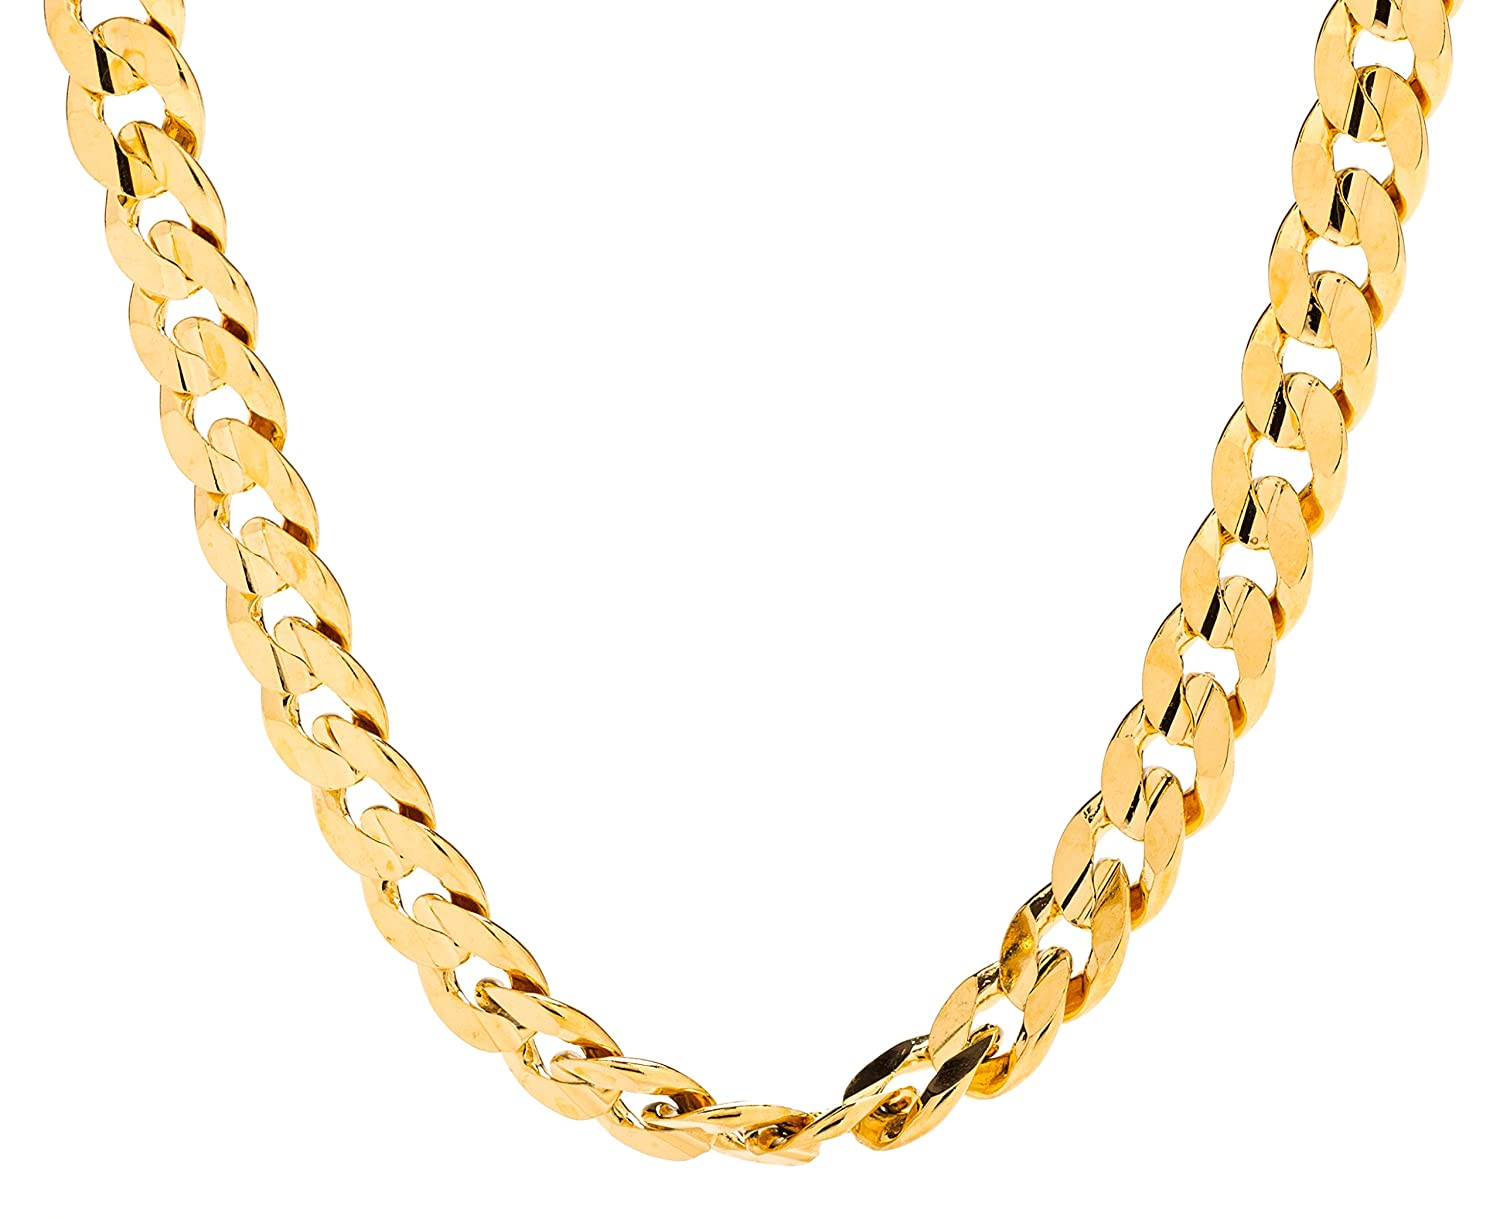 Cuban Link Chain For Sale >> Amazon Com Lifetime Jewelry Cuban Link Chain 6mm 24k Gold Over